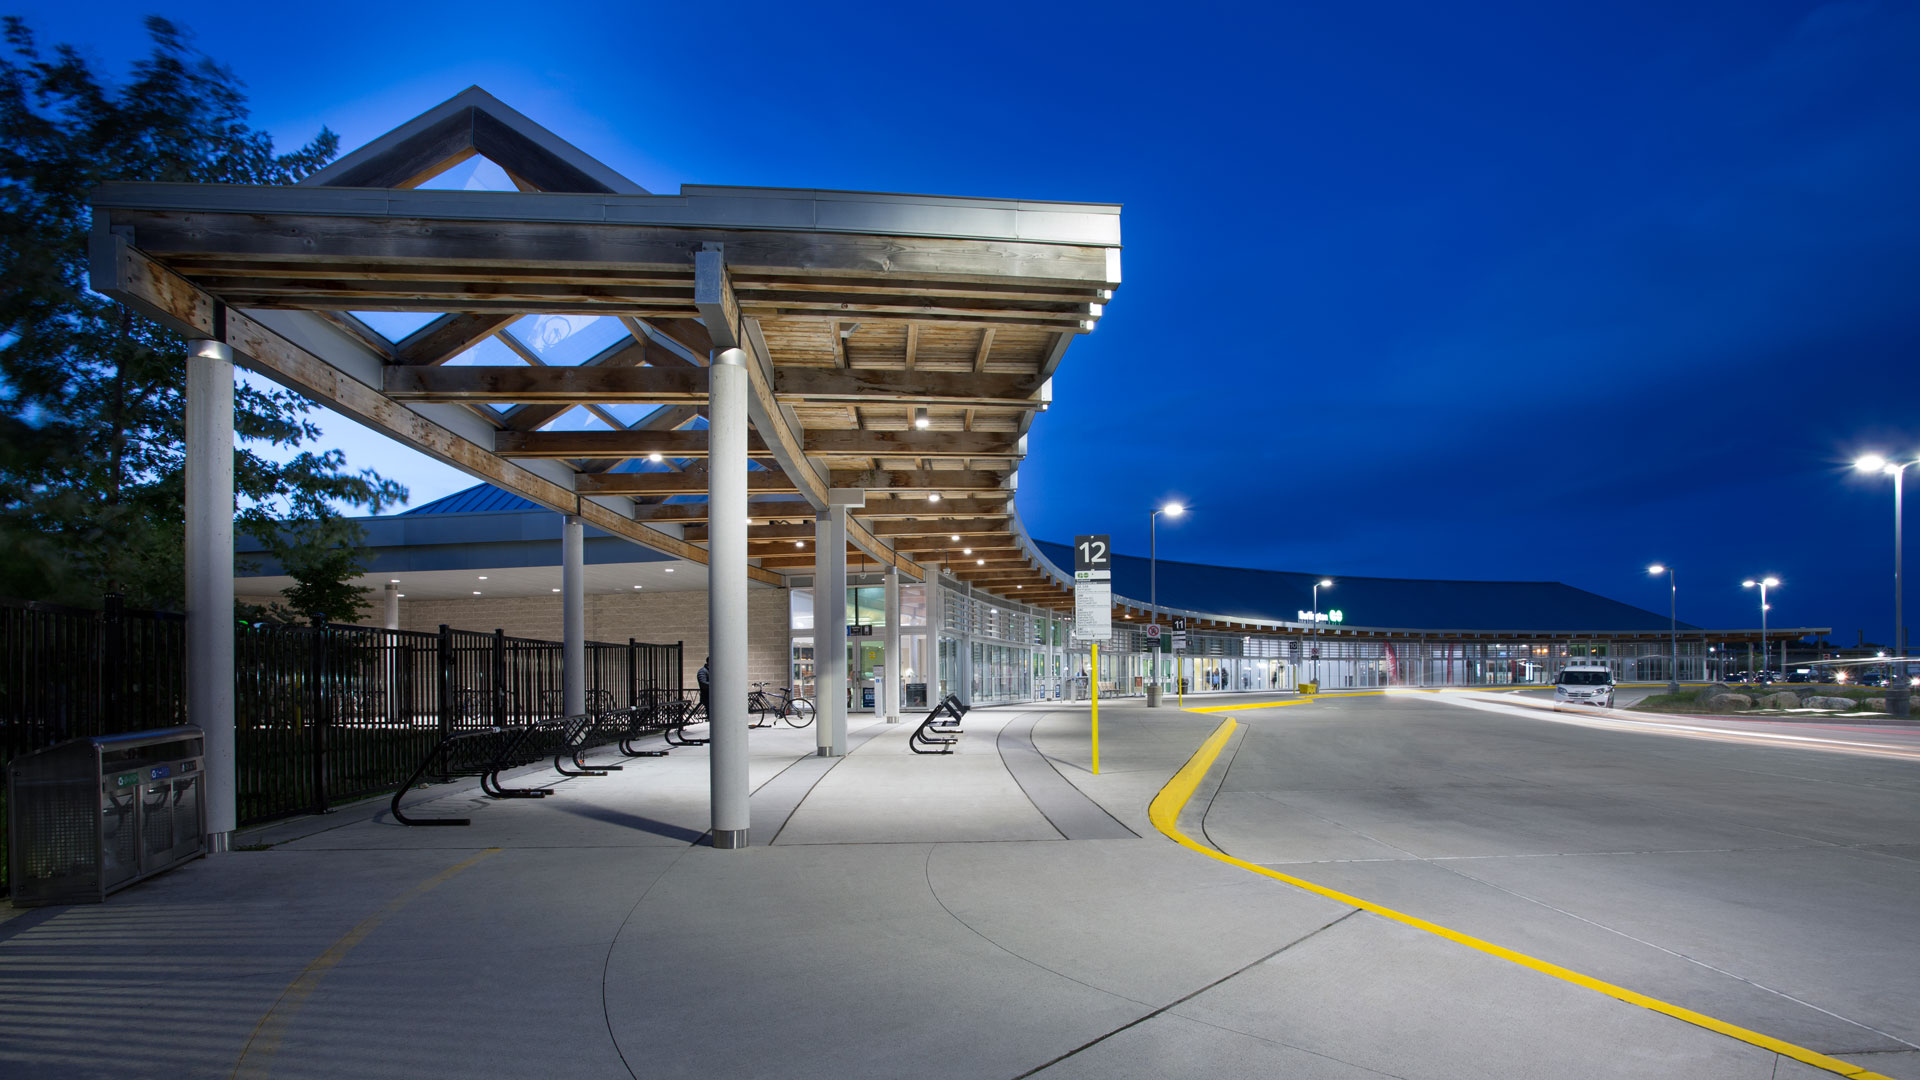 Exterior photo of the facility at night, showing the bike storage area